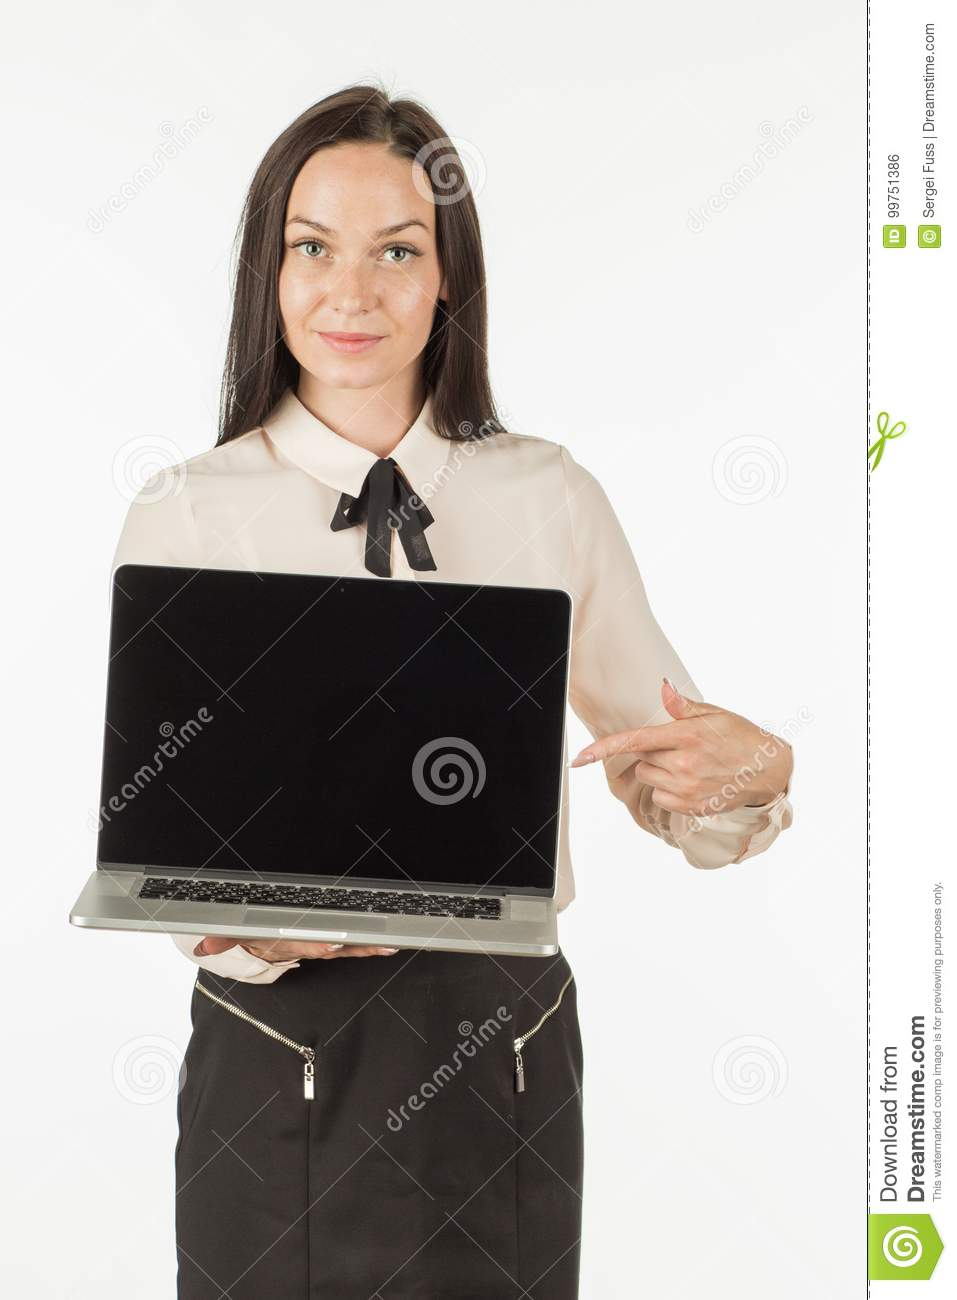 A girl is offering a laptop with a smile.